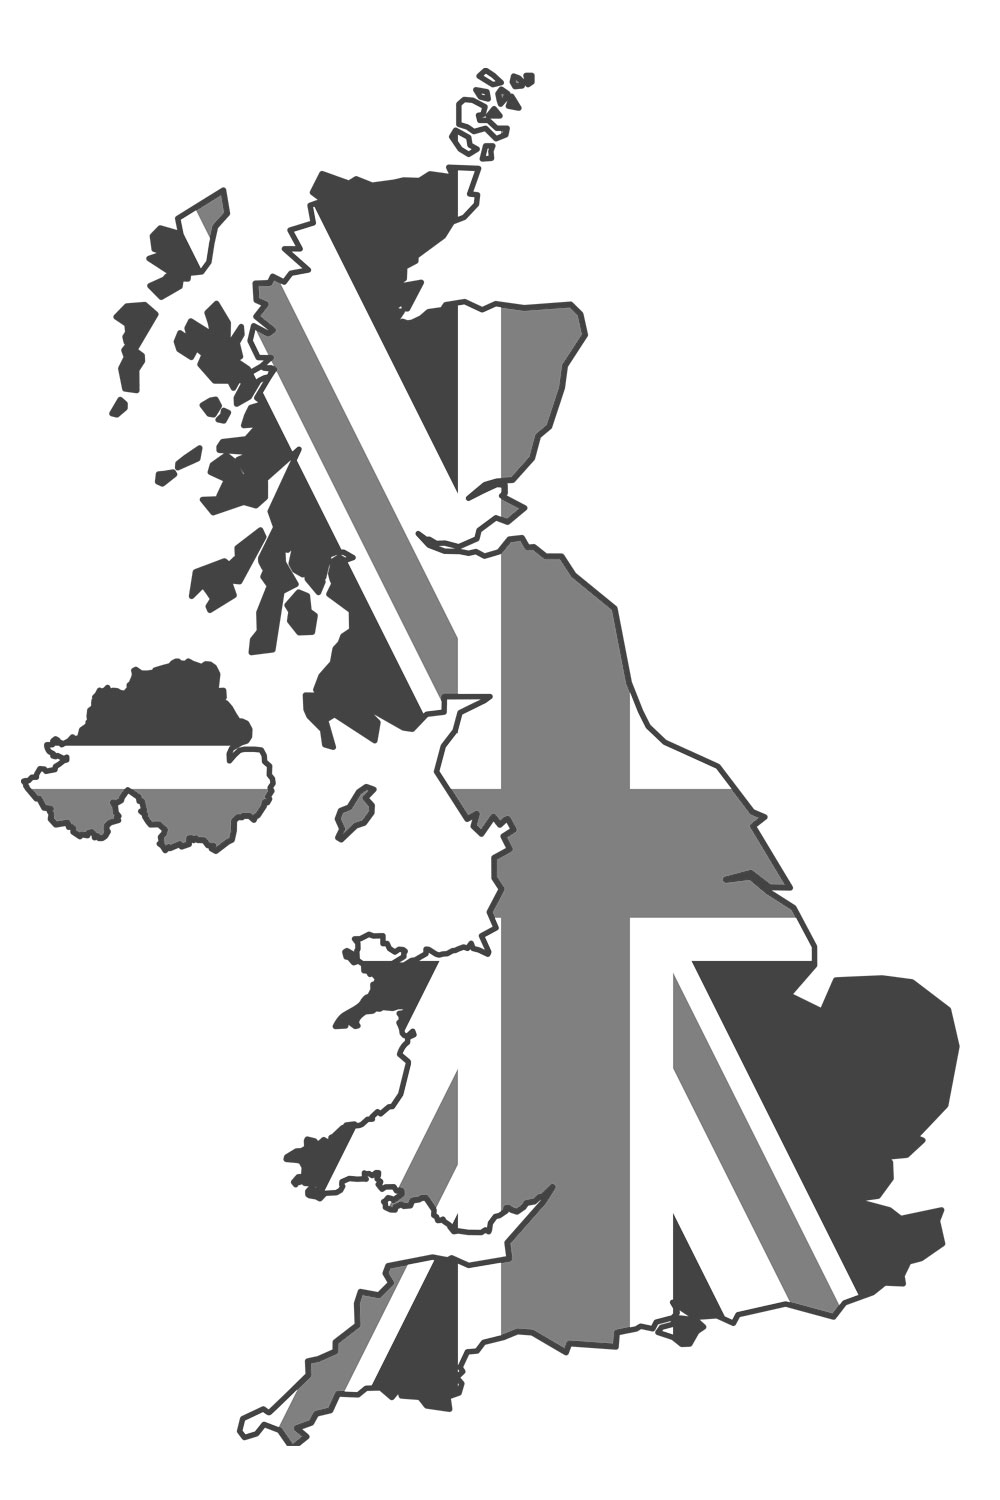 Meet your UK mandates with our geography agnostic solutions